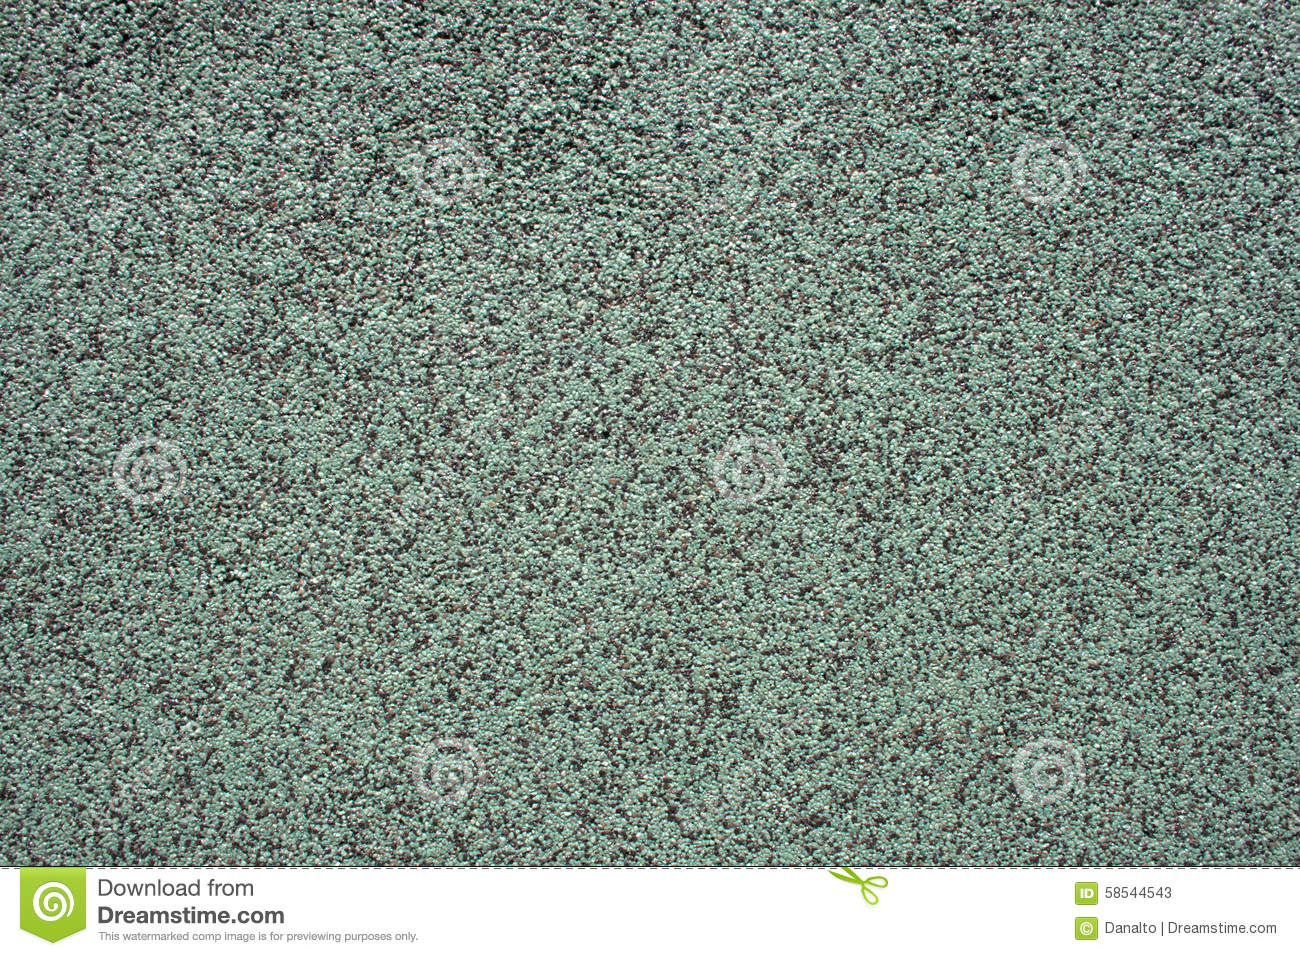 Green Pebbledash Stock Photo Image 58544543